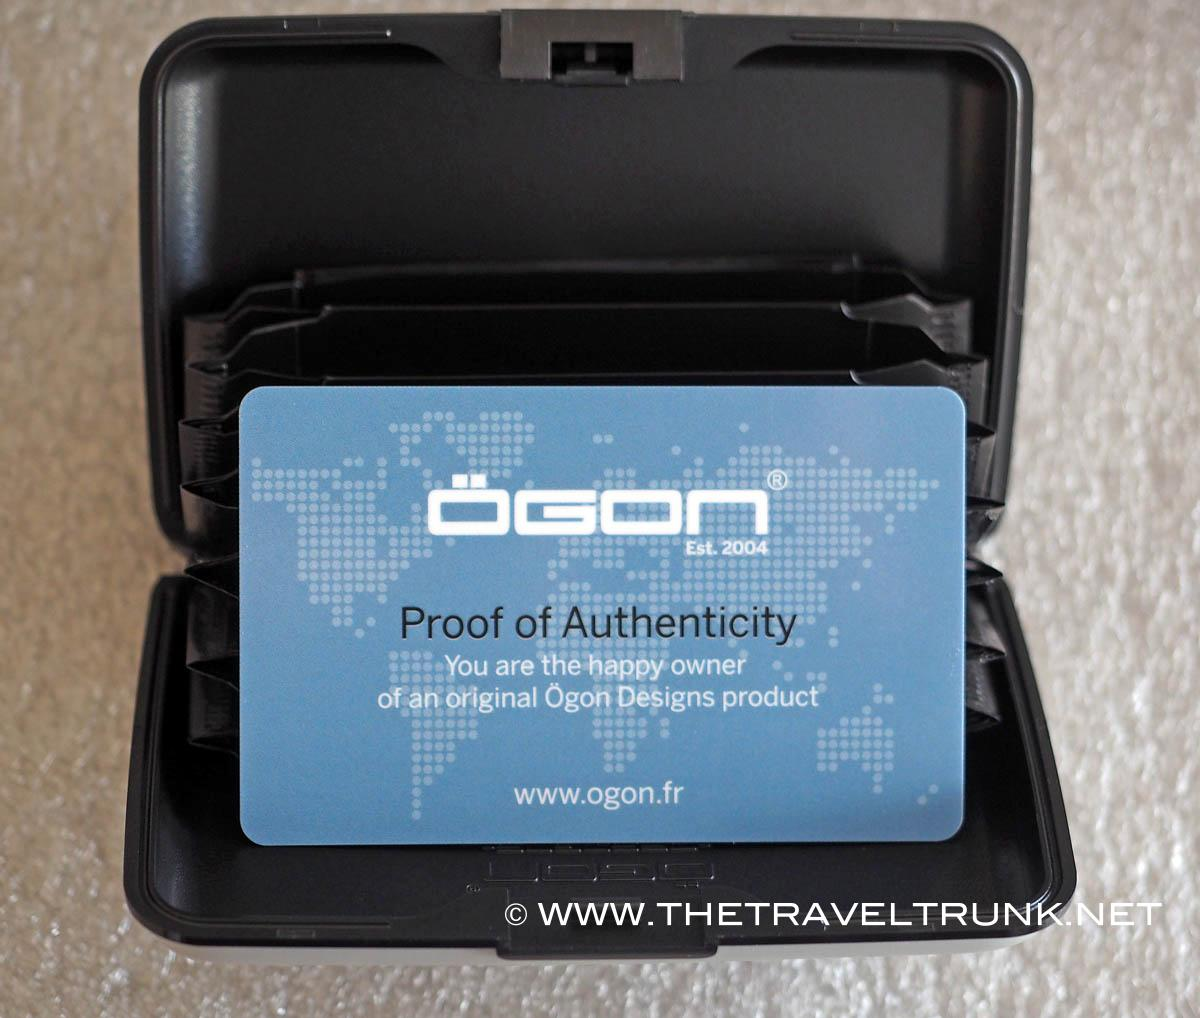 The Ögon wallet may help you keep in credit while on the move.